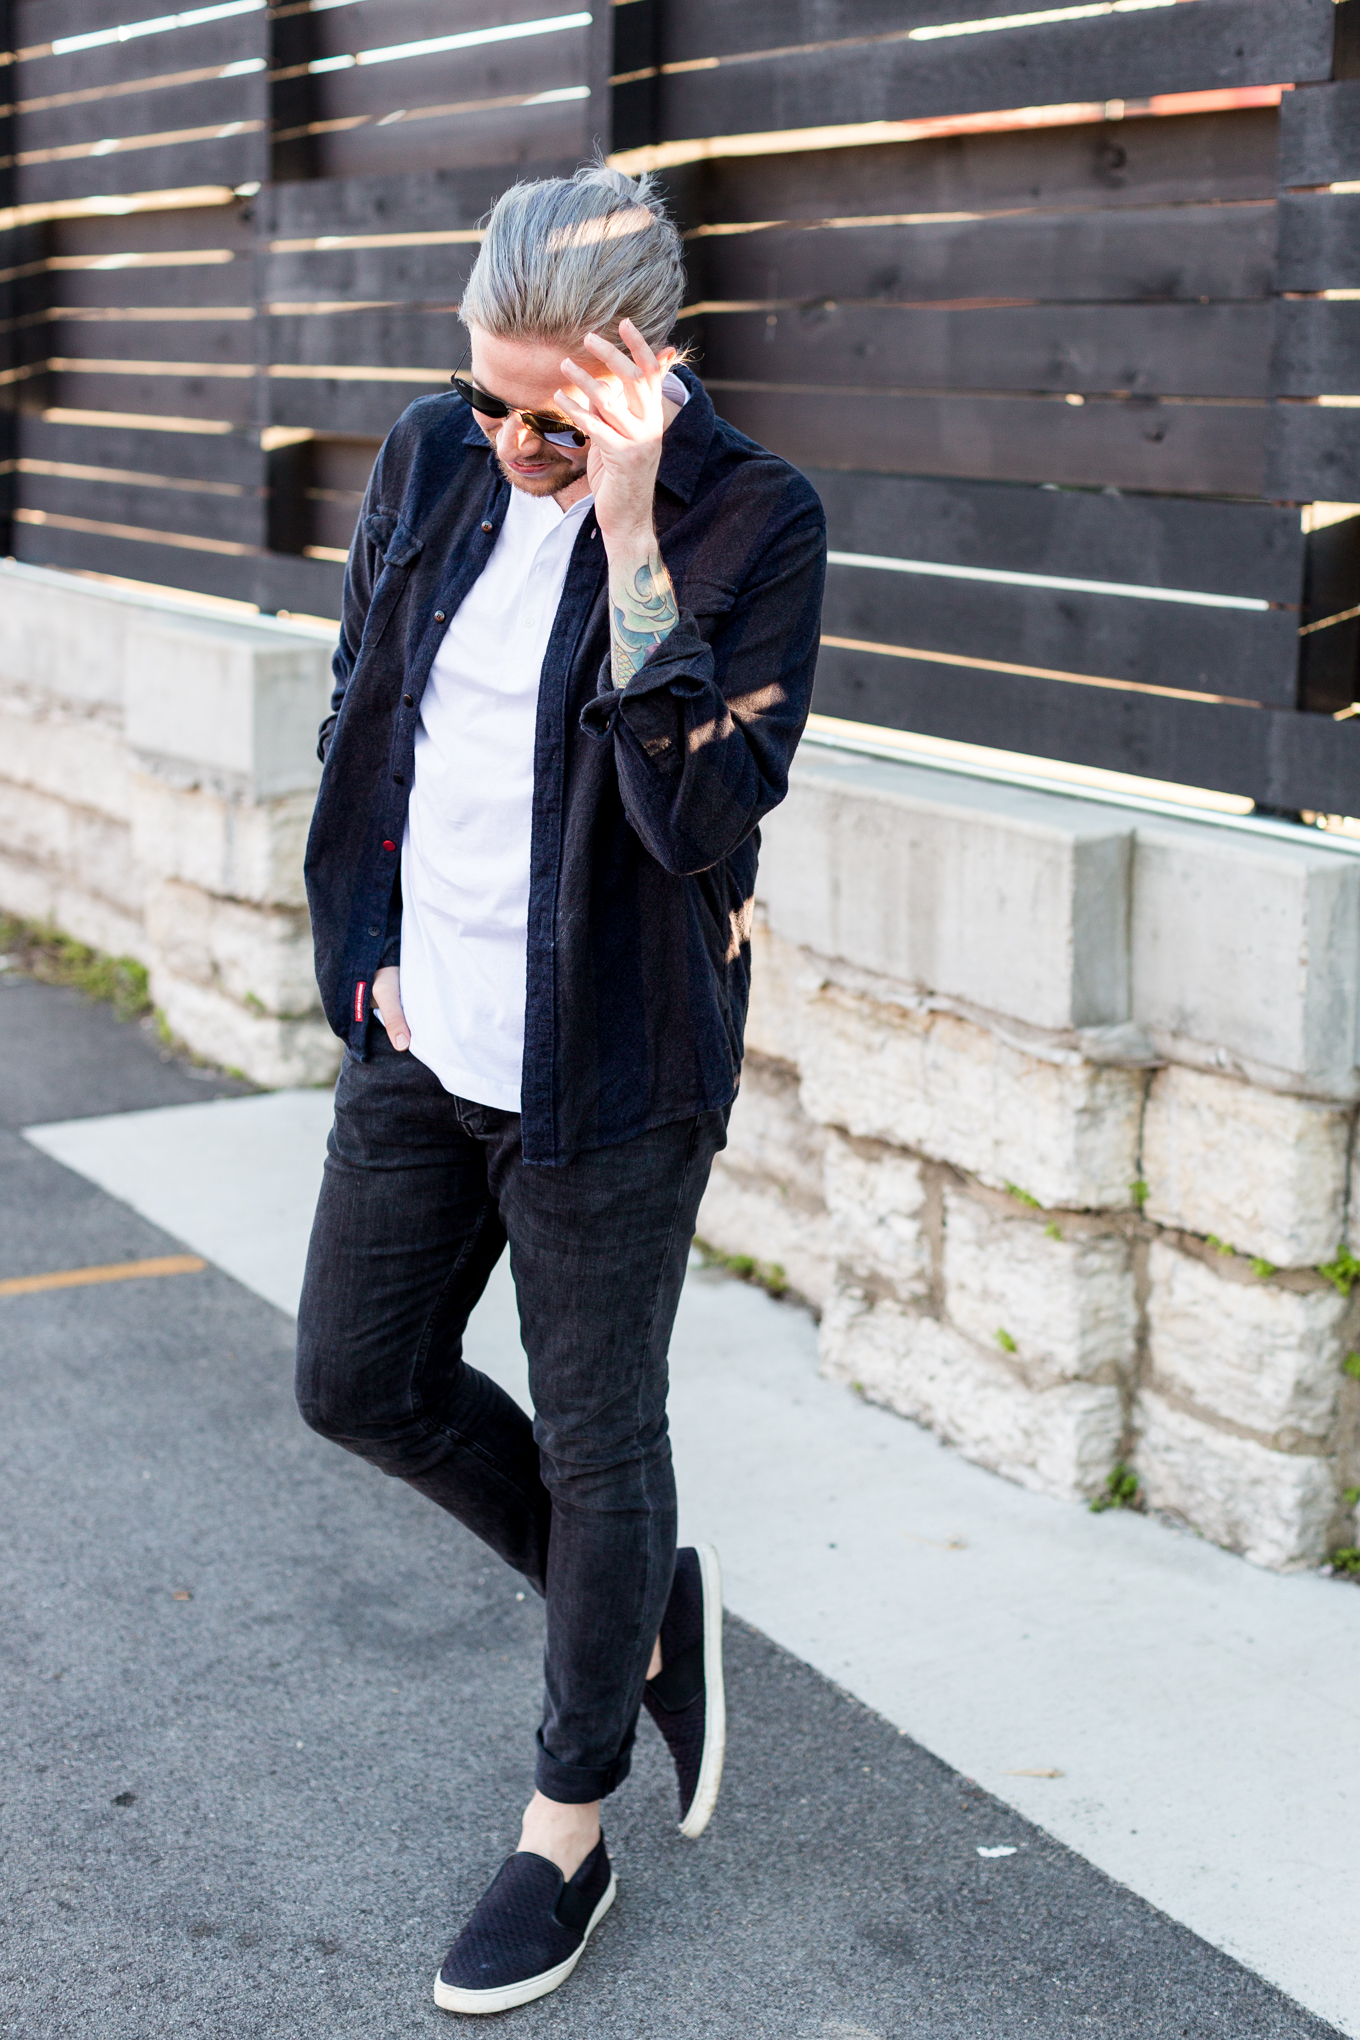 louisville blogger, kentucky fashion blog, katin clothing, clarks slip on shoes